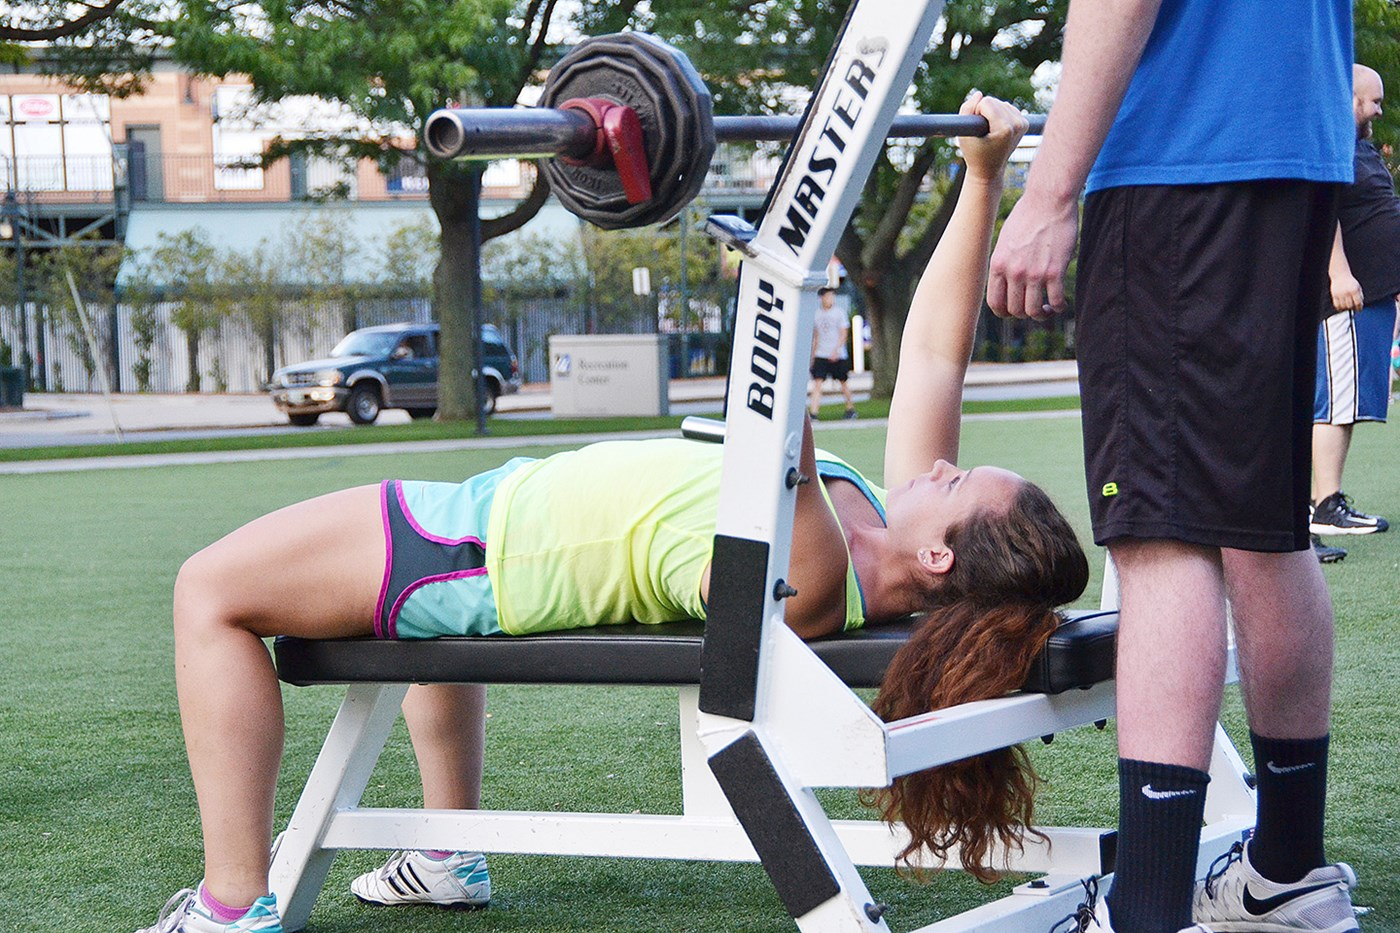 Woman Student Weightlifting